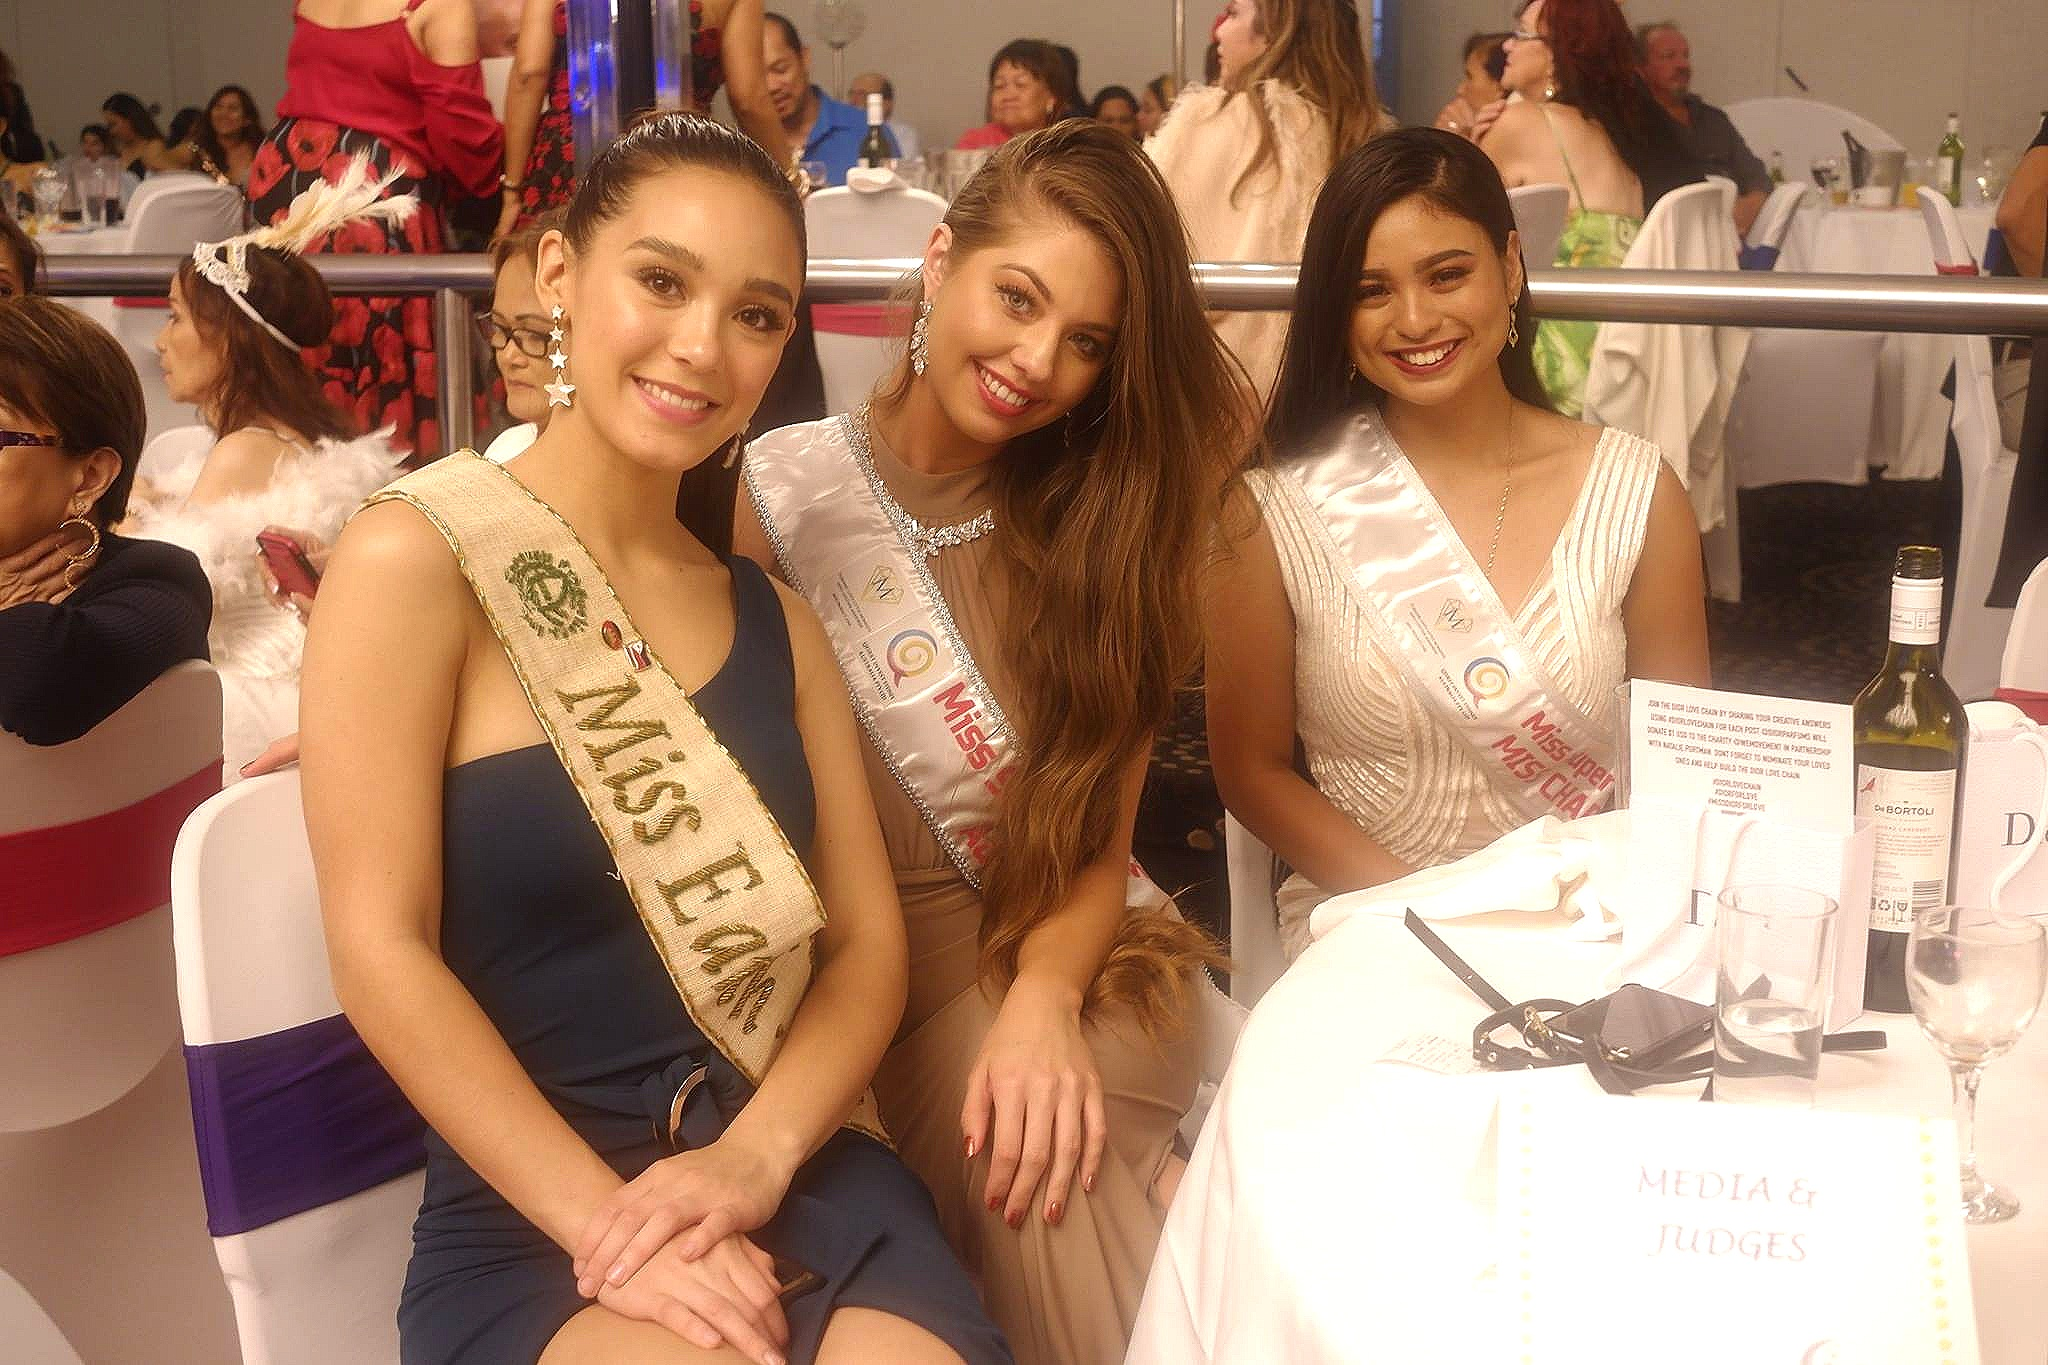 smad-pageant-raffle-rpizes-charity-melbourne-charity-philippines-davao-palawan-rio-2019-dinner-dance-melbourne-australia-chrity-ball.jpg